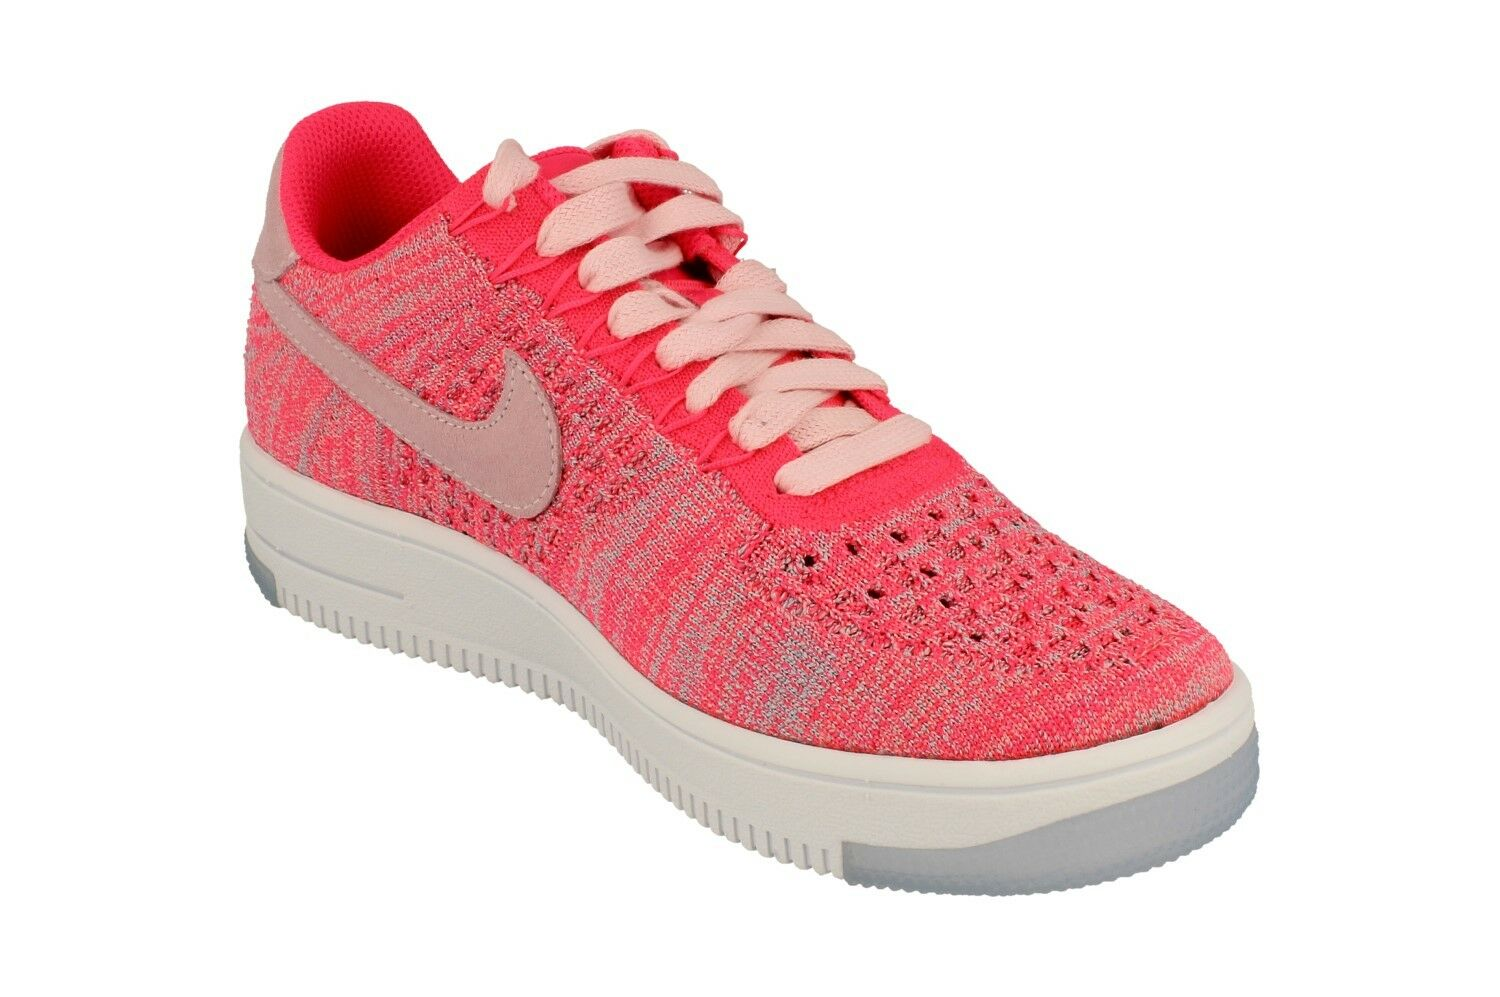 Nike Mujer Af1 Air Force 1 1 1 Flyknit bajo Zapatillas Running 820256 Zapatillas 601 a4beef